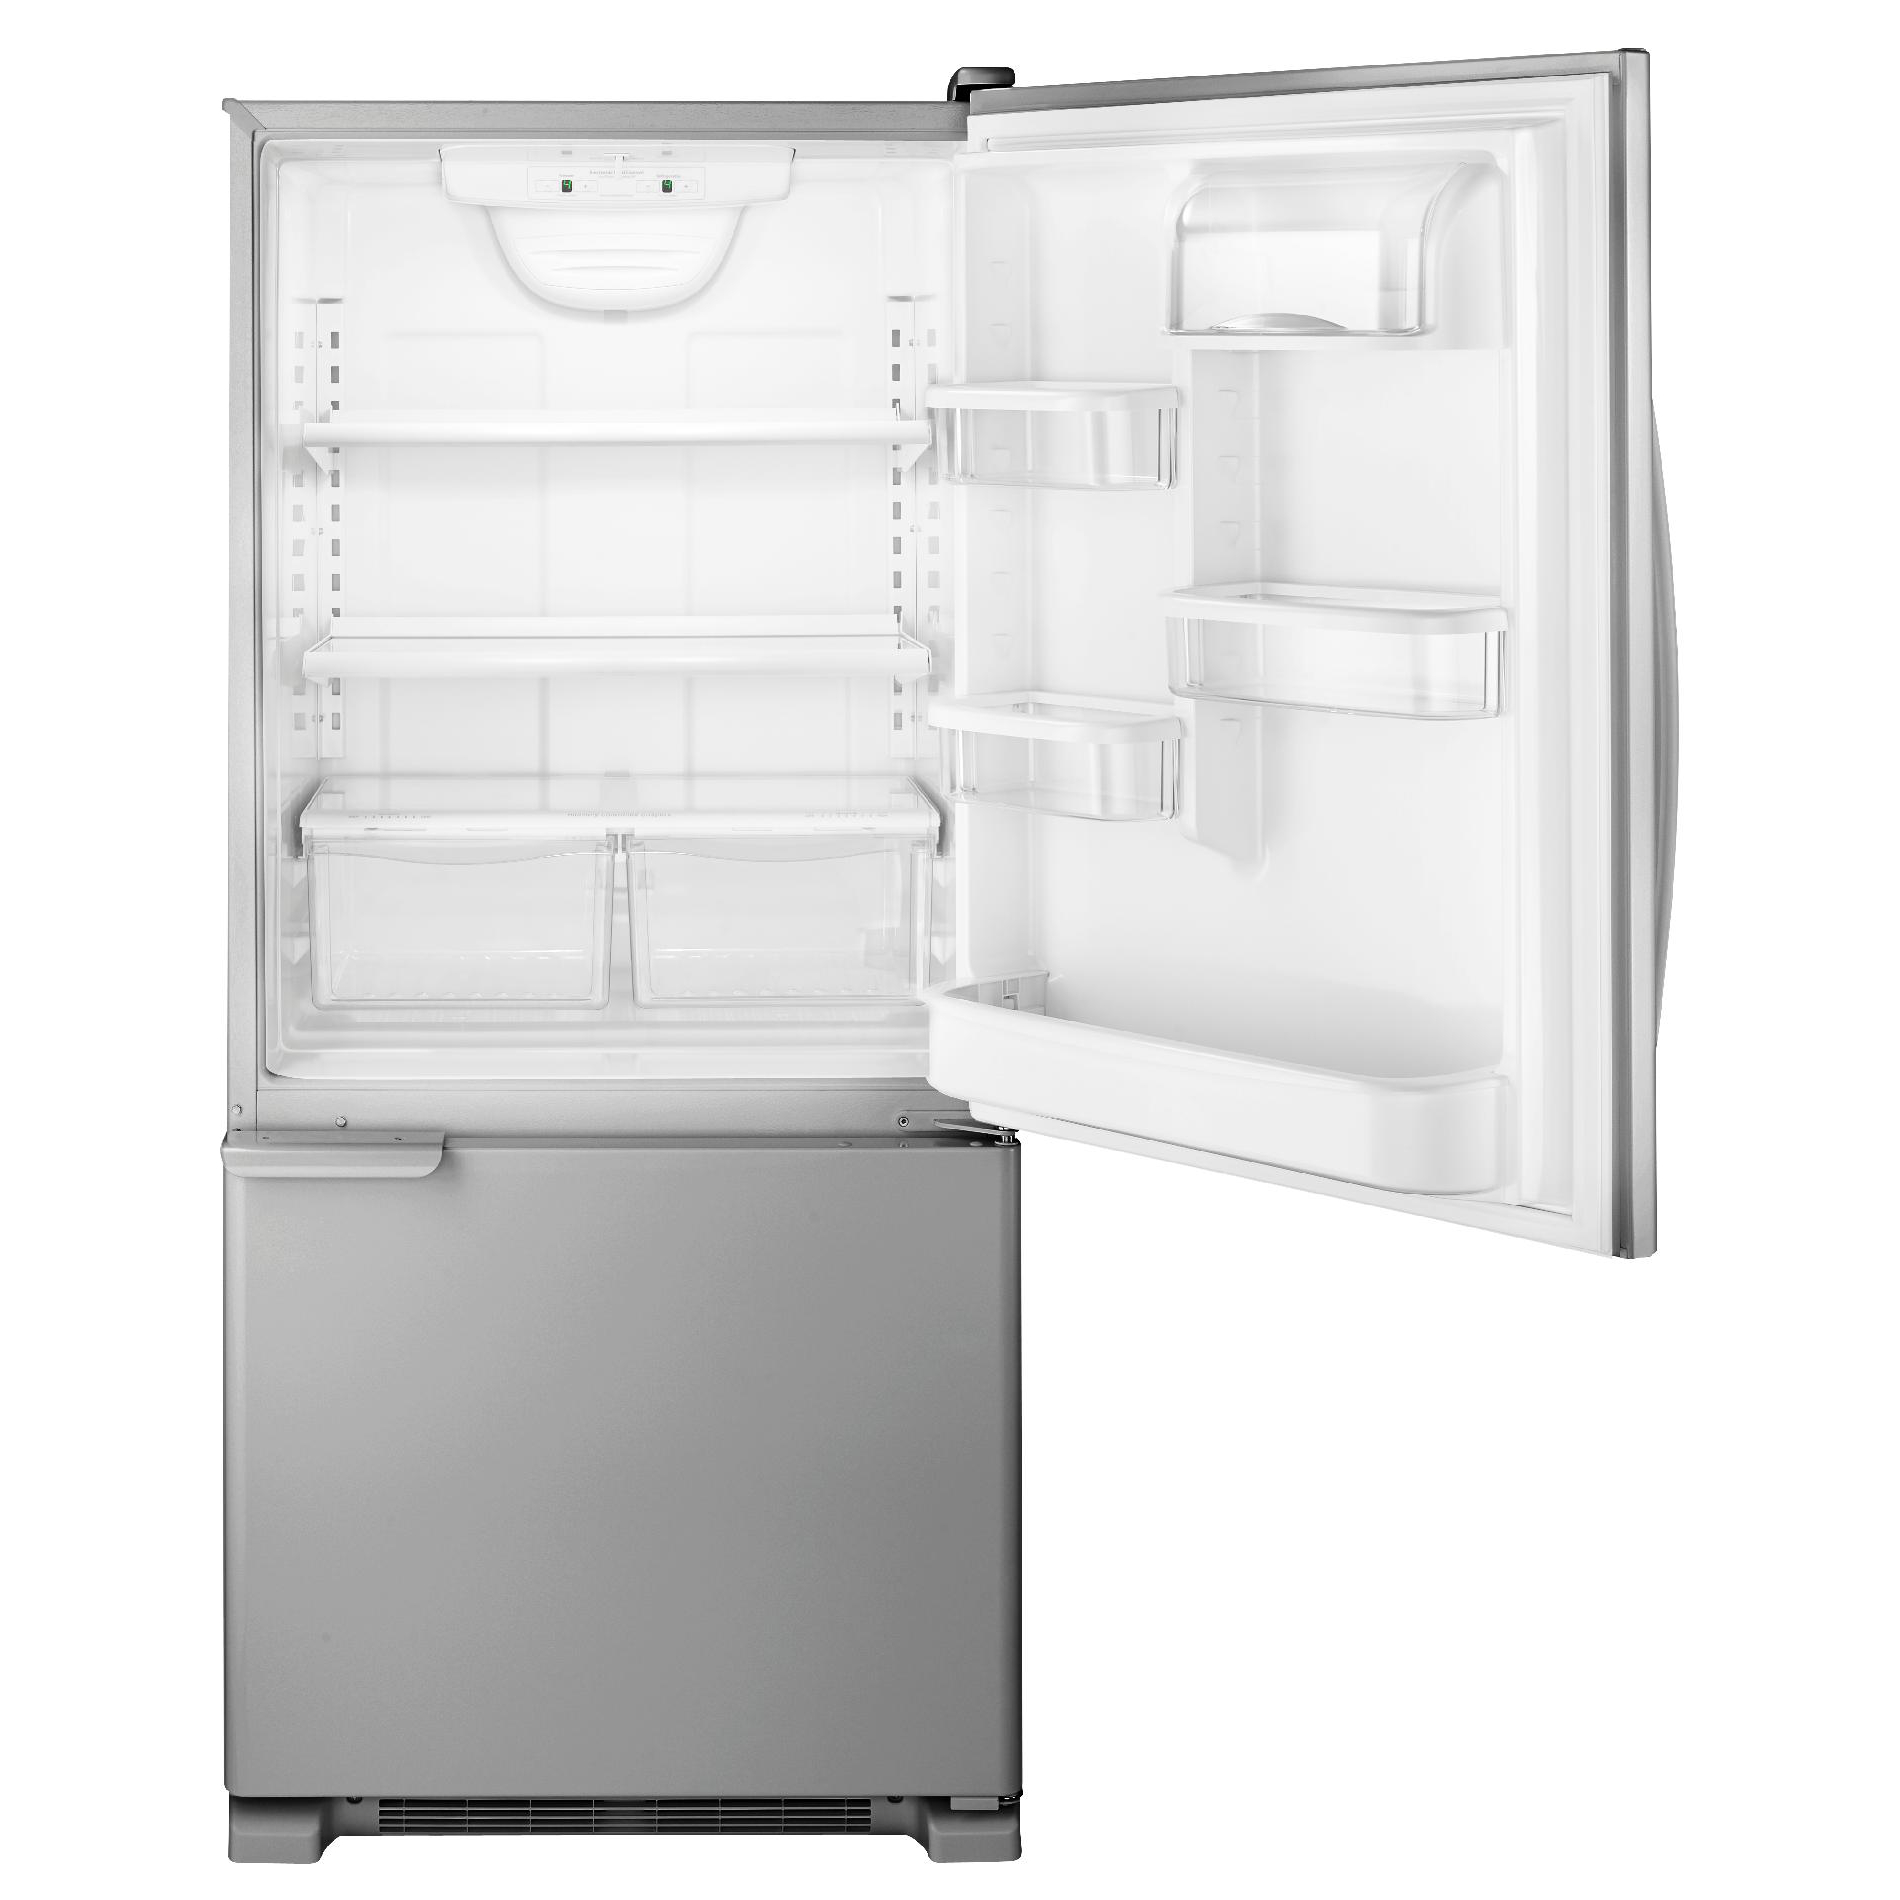 Kenmore 69313 19 cu. ft. Bottom-Freezer Refrigerator - Stainless Steel